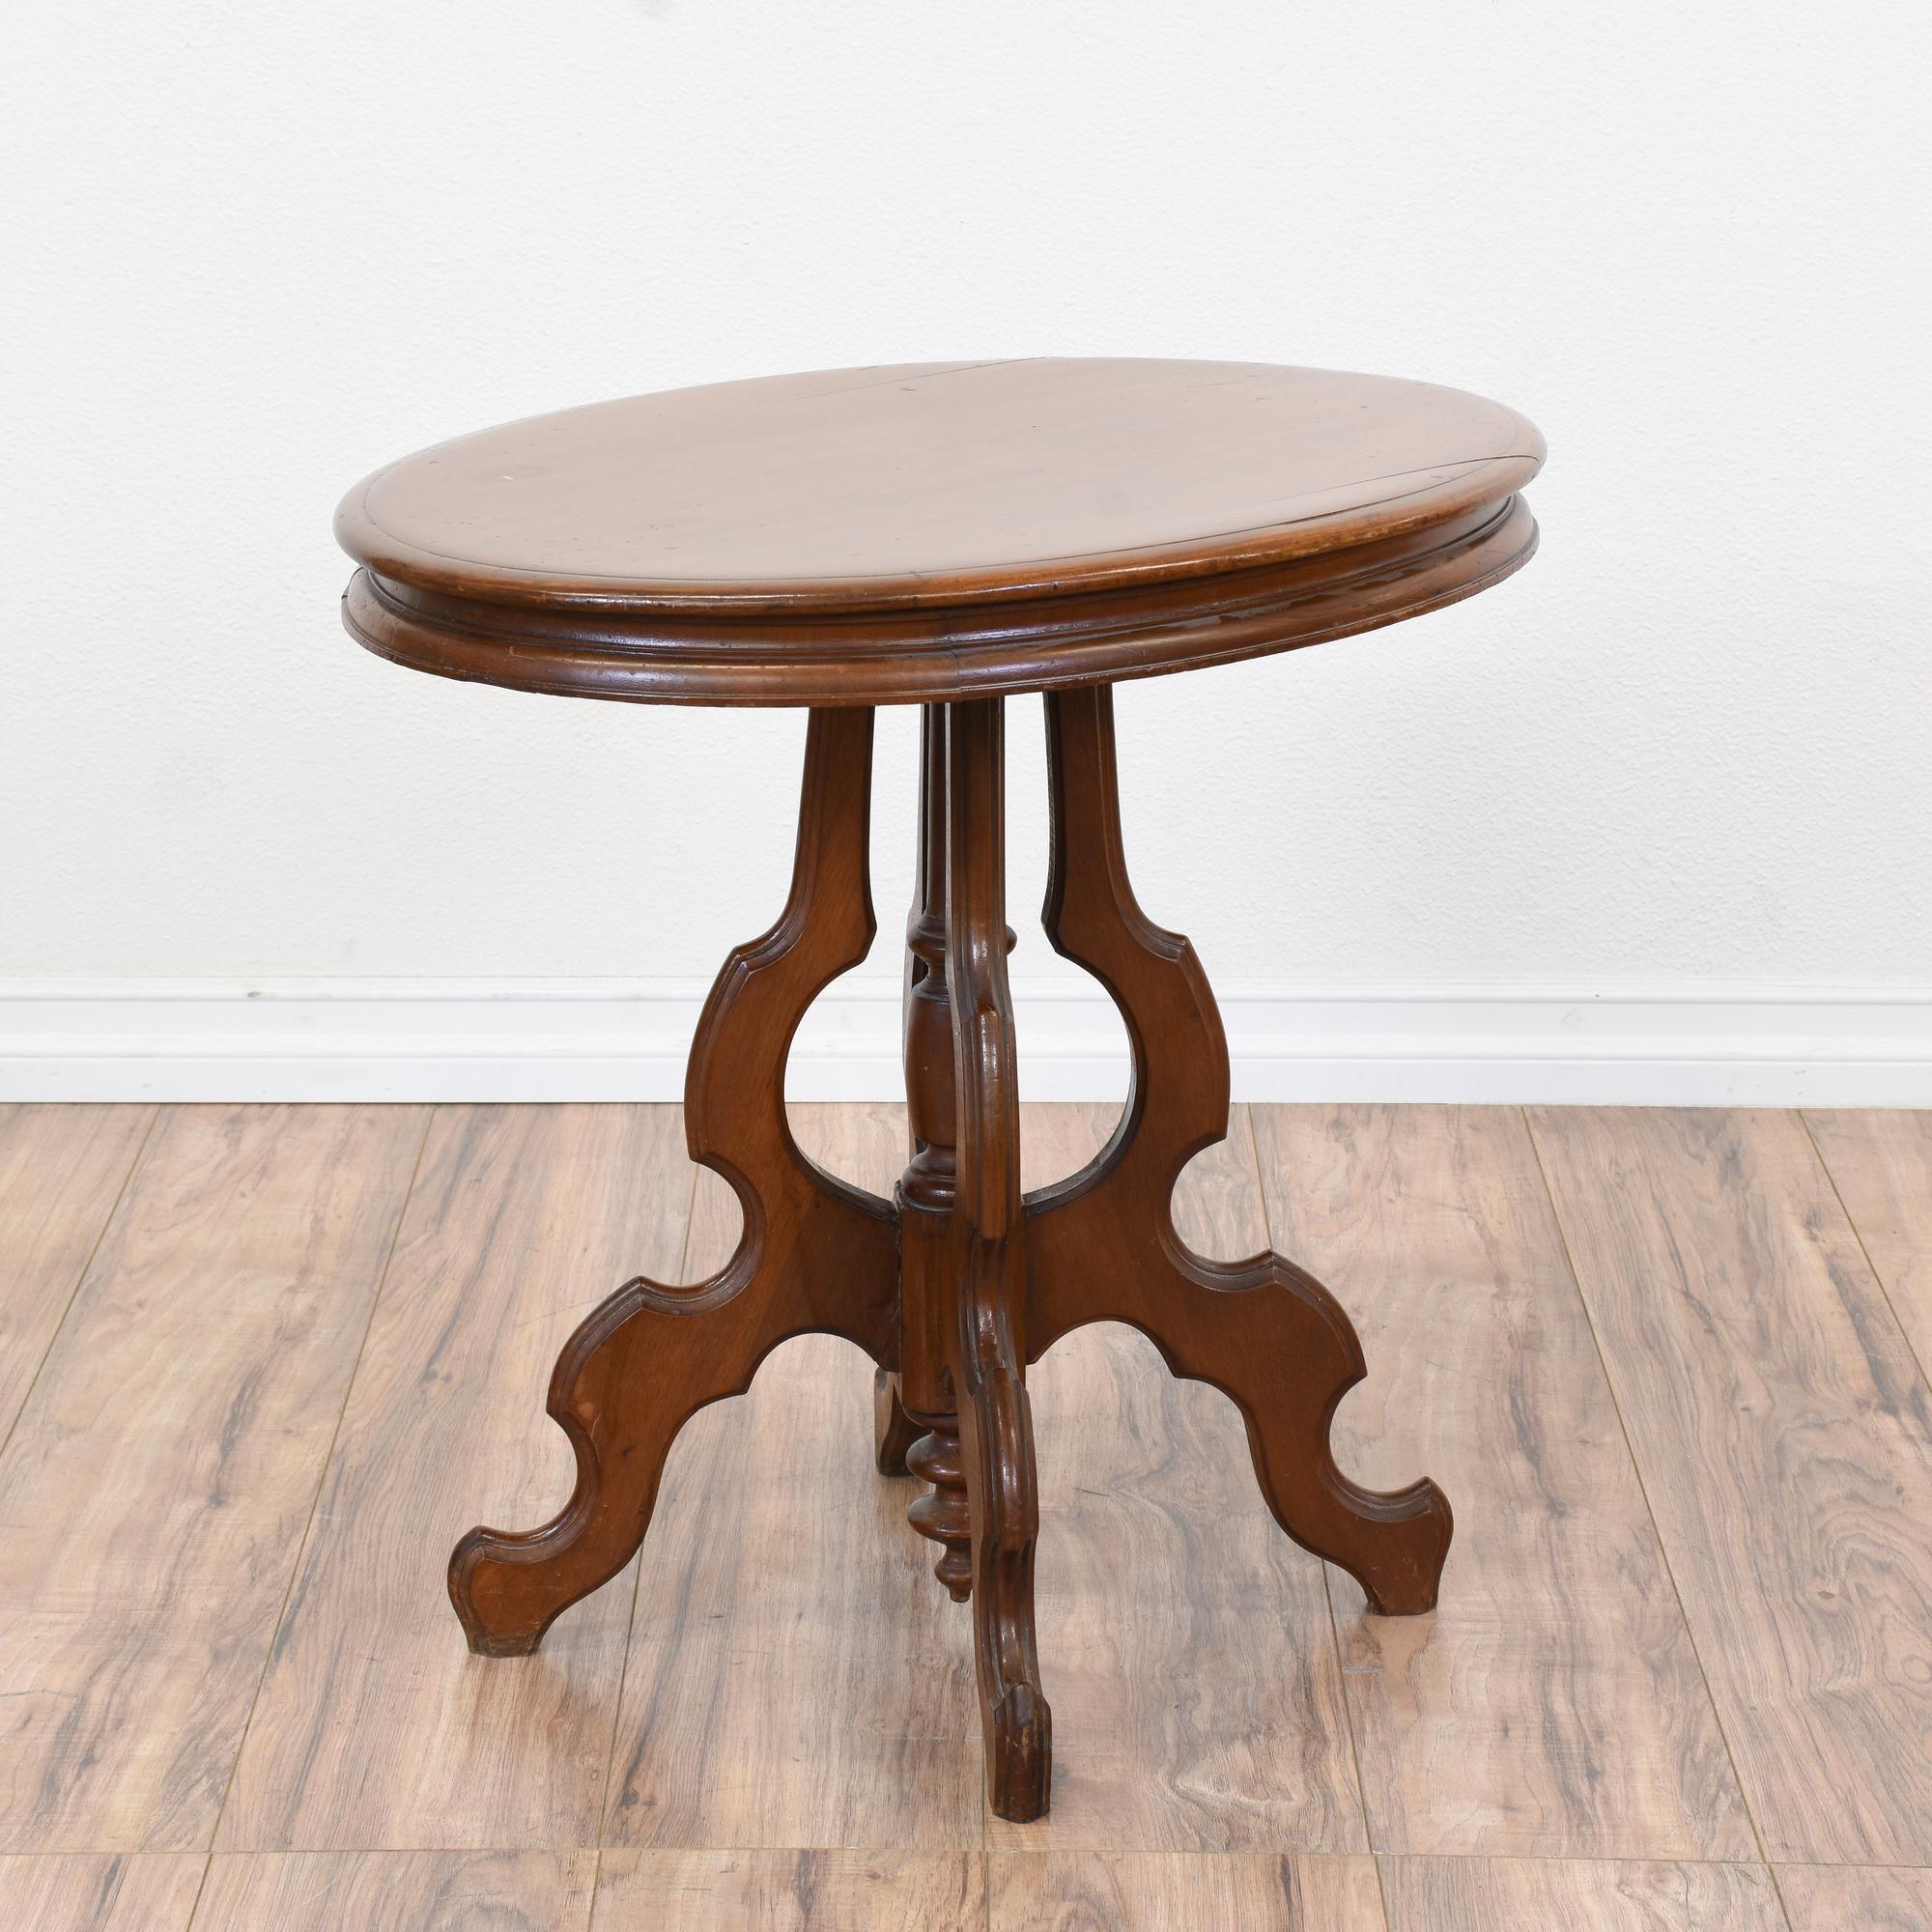 probably fantastic nice victorian style end tables ideas jockboymusic beautiful table features oval tabletop and beautifully carved wood base solid perfect for nightstand oak